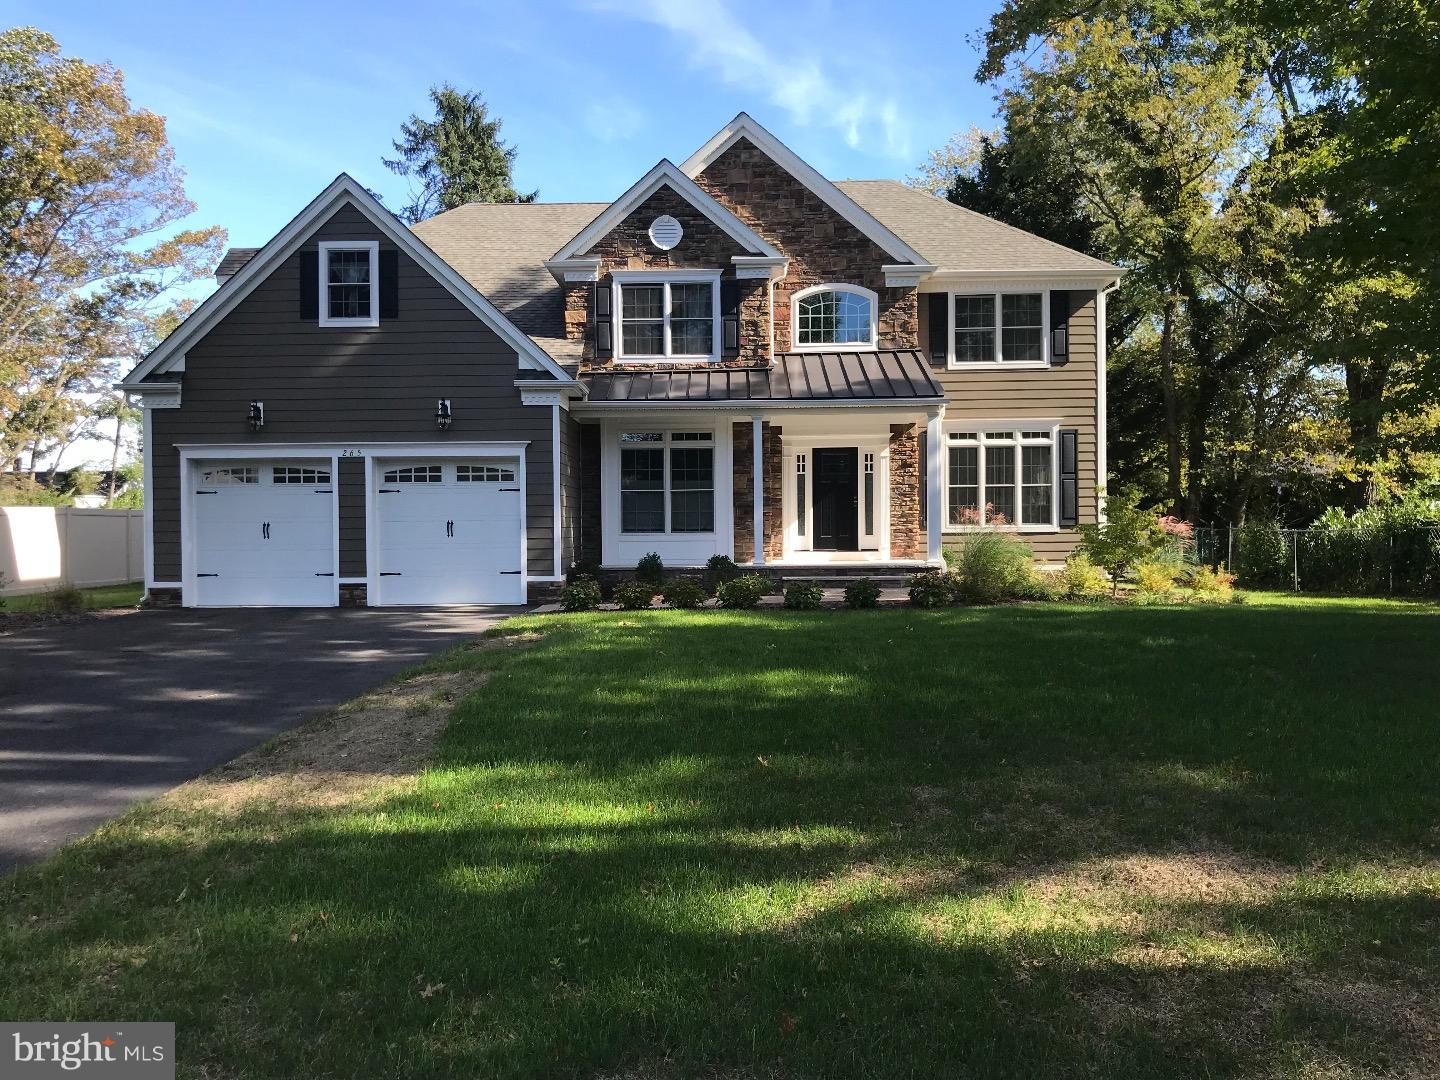 Property for Sale at 724 PRINCETON KINGSTON Road Princeton, New Jersey 08540 United States